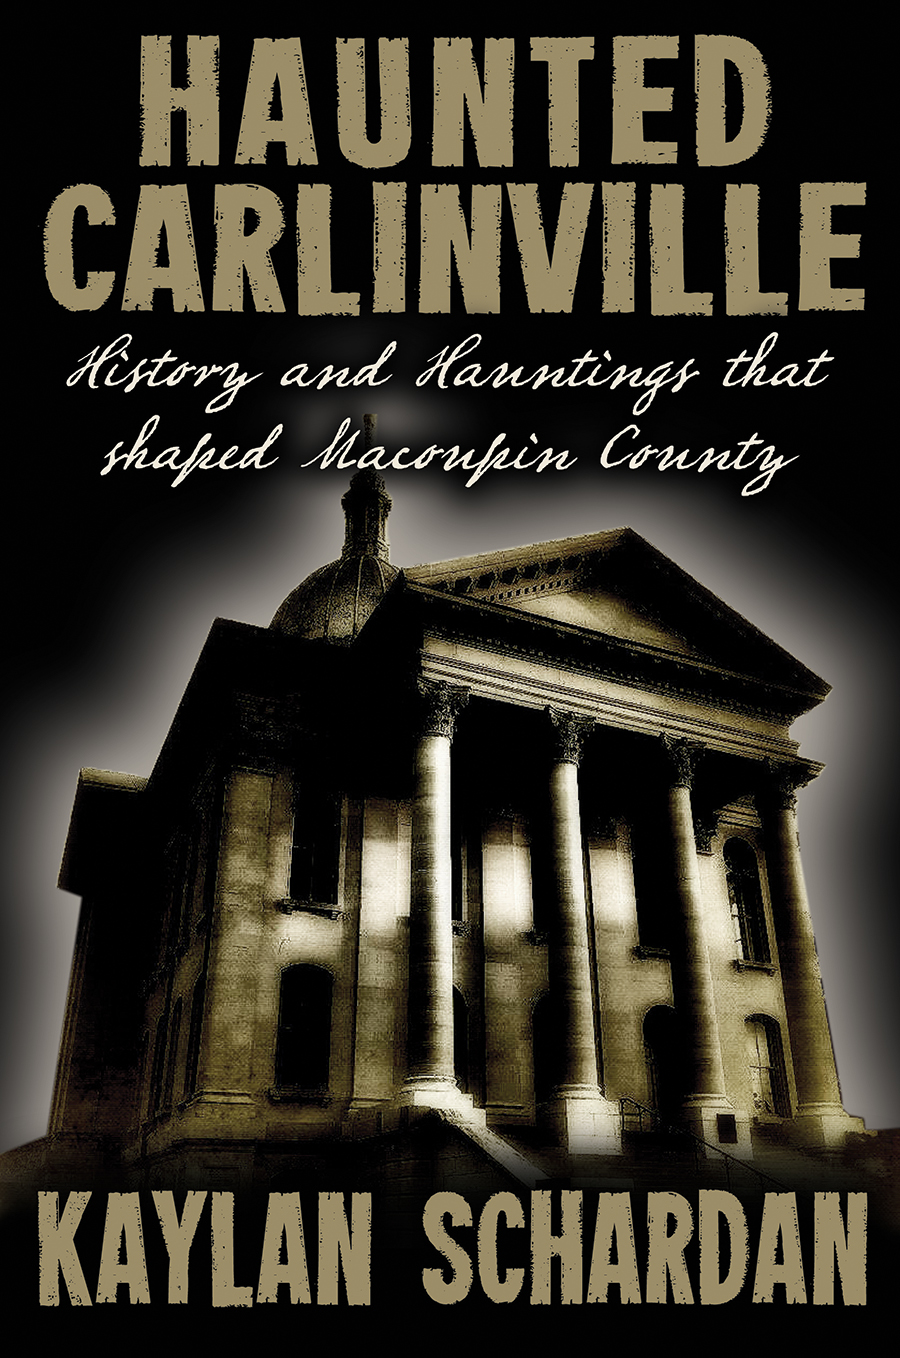 HAUNTED CARLINVILLE.jpg